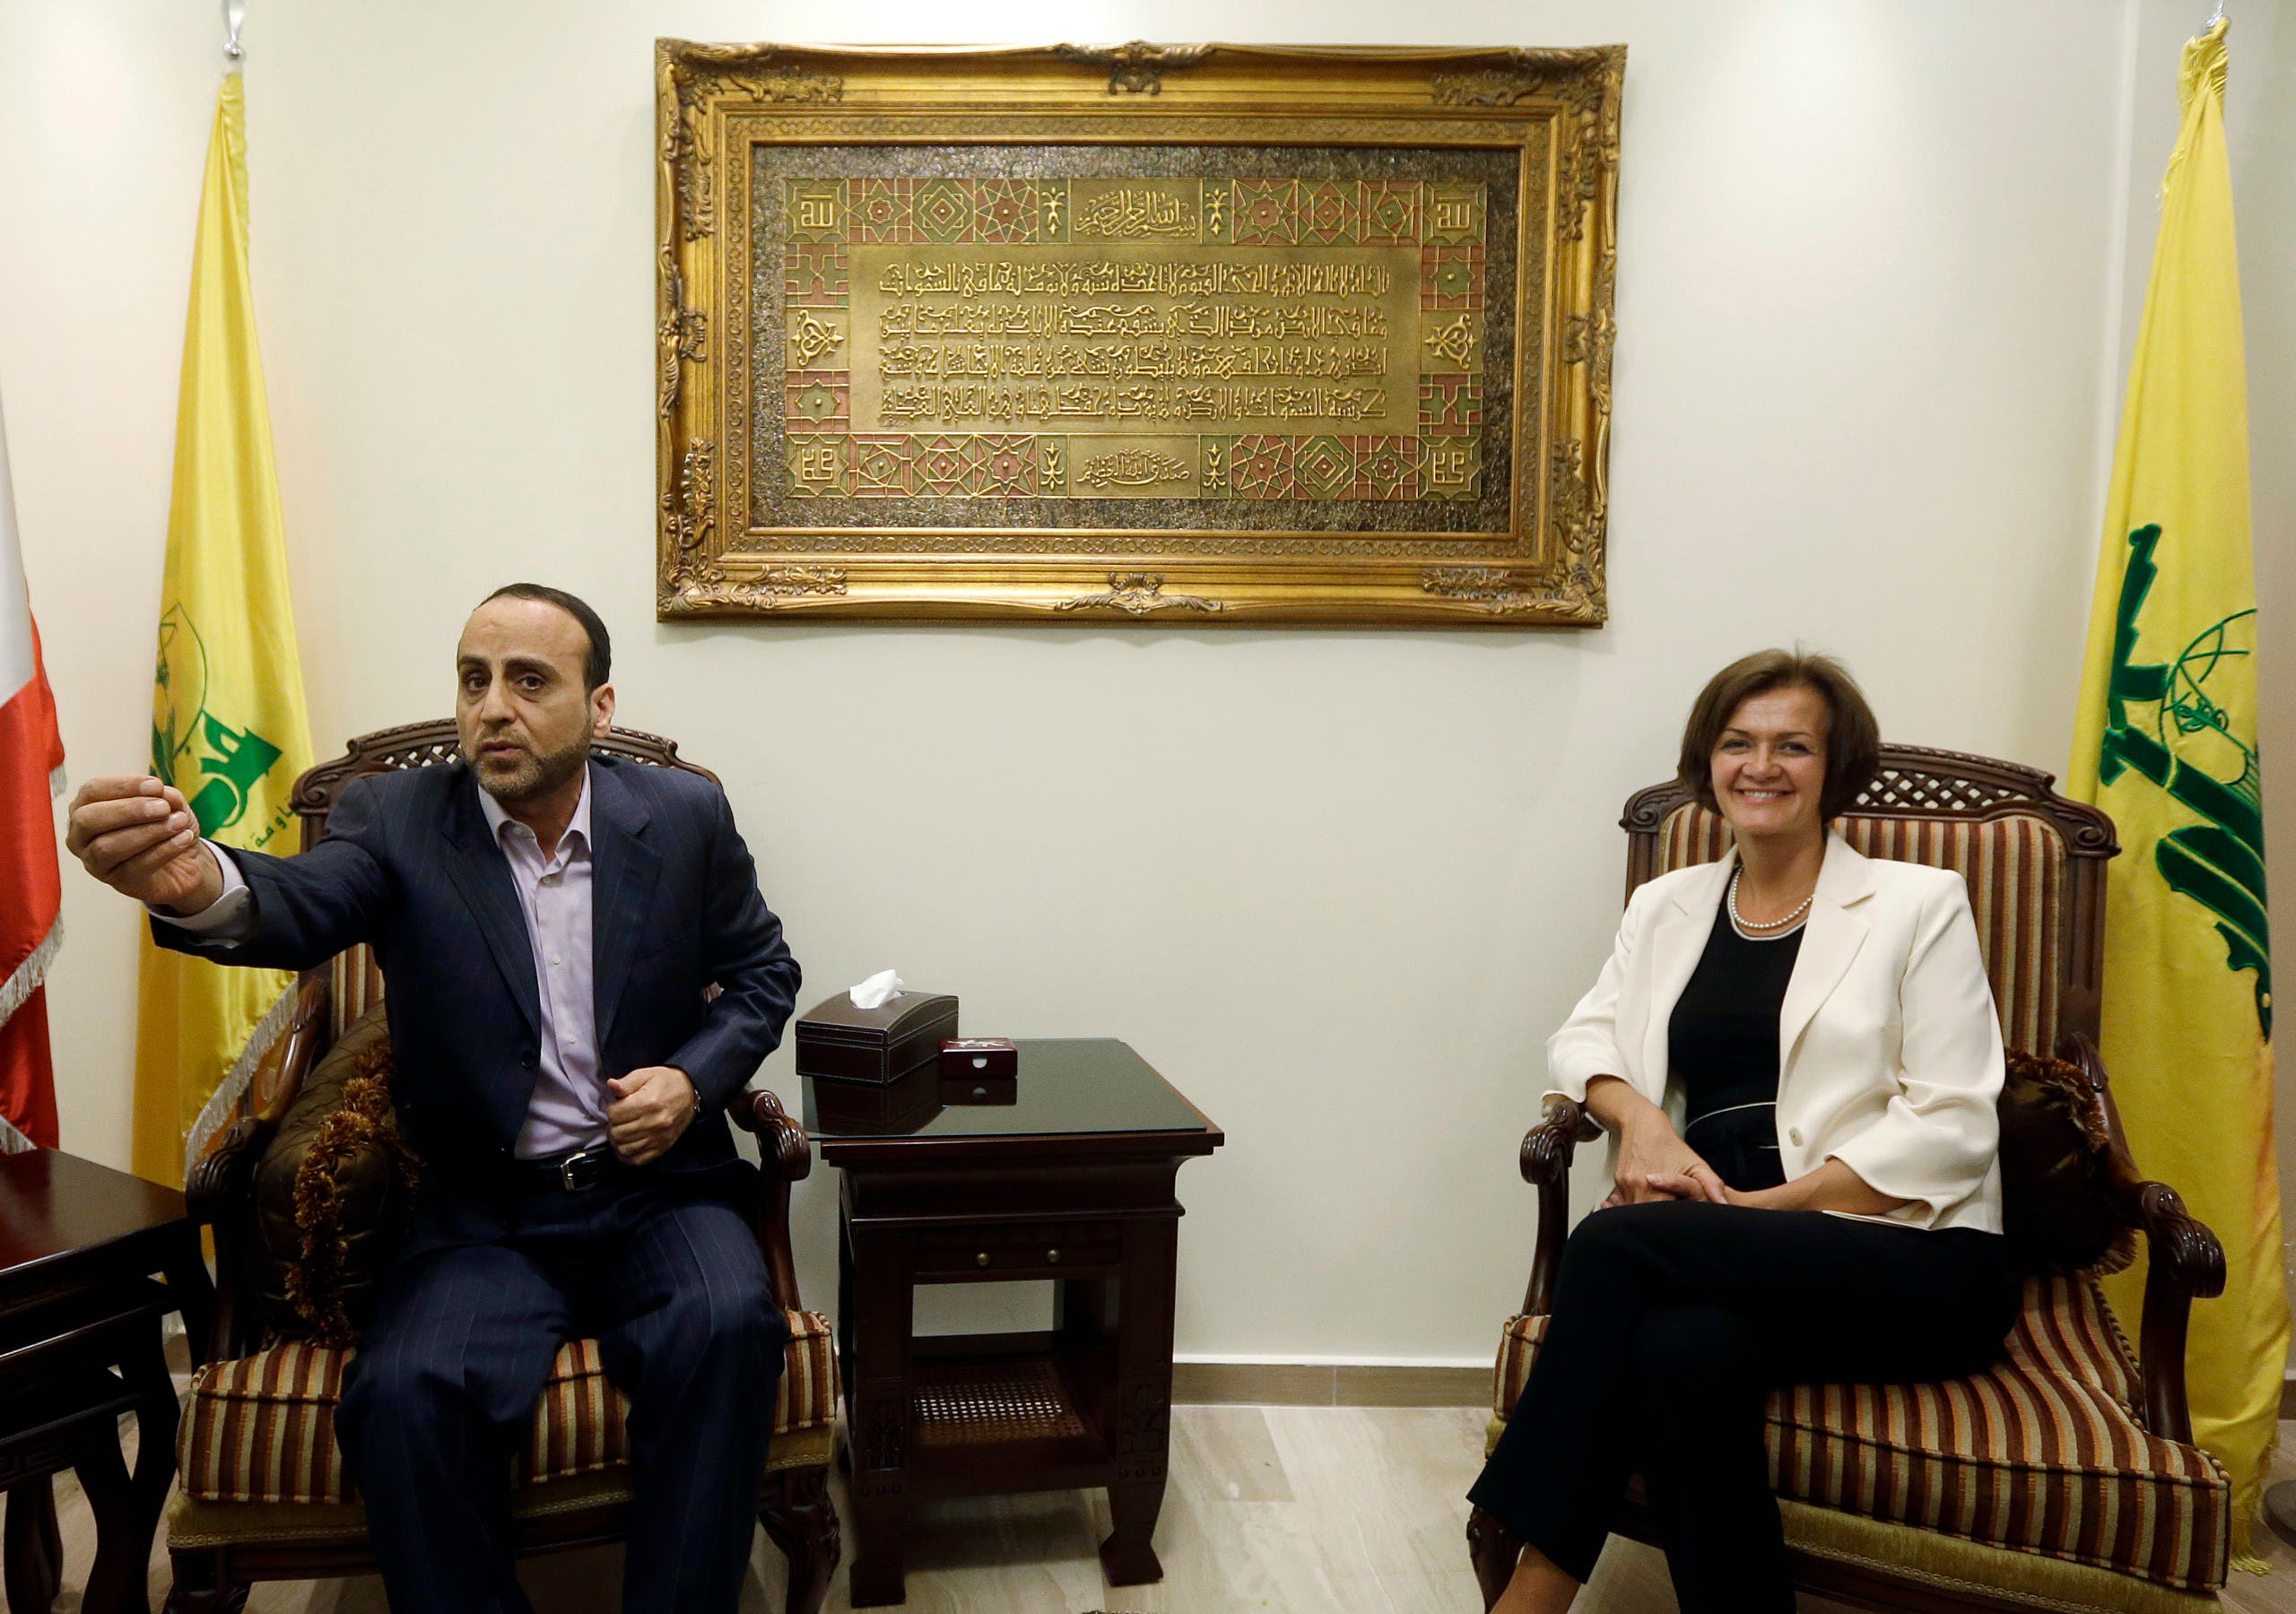 Ammar al-Moussawi, then head of Hezbollah's foreign relations department, left, with EU ambassador to Lebanon Angelina Eichhorst, right, in the southern suburb of Beirut on July 25, 2013. (File photo: AP)